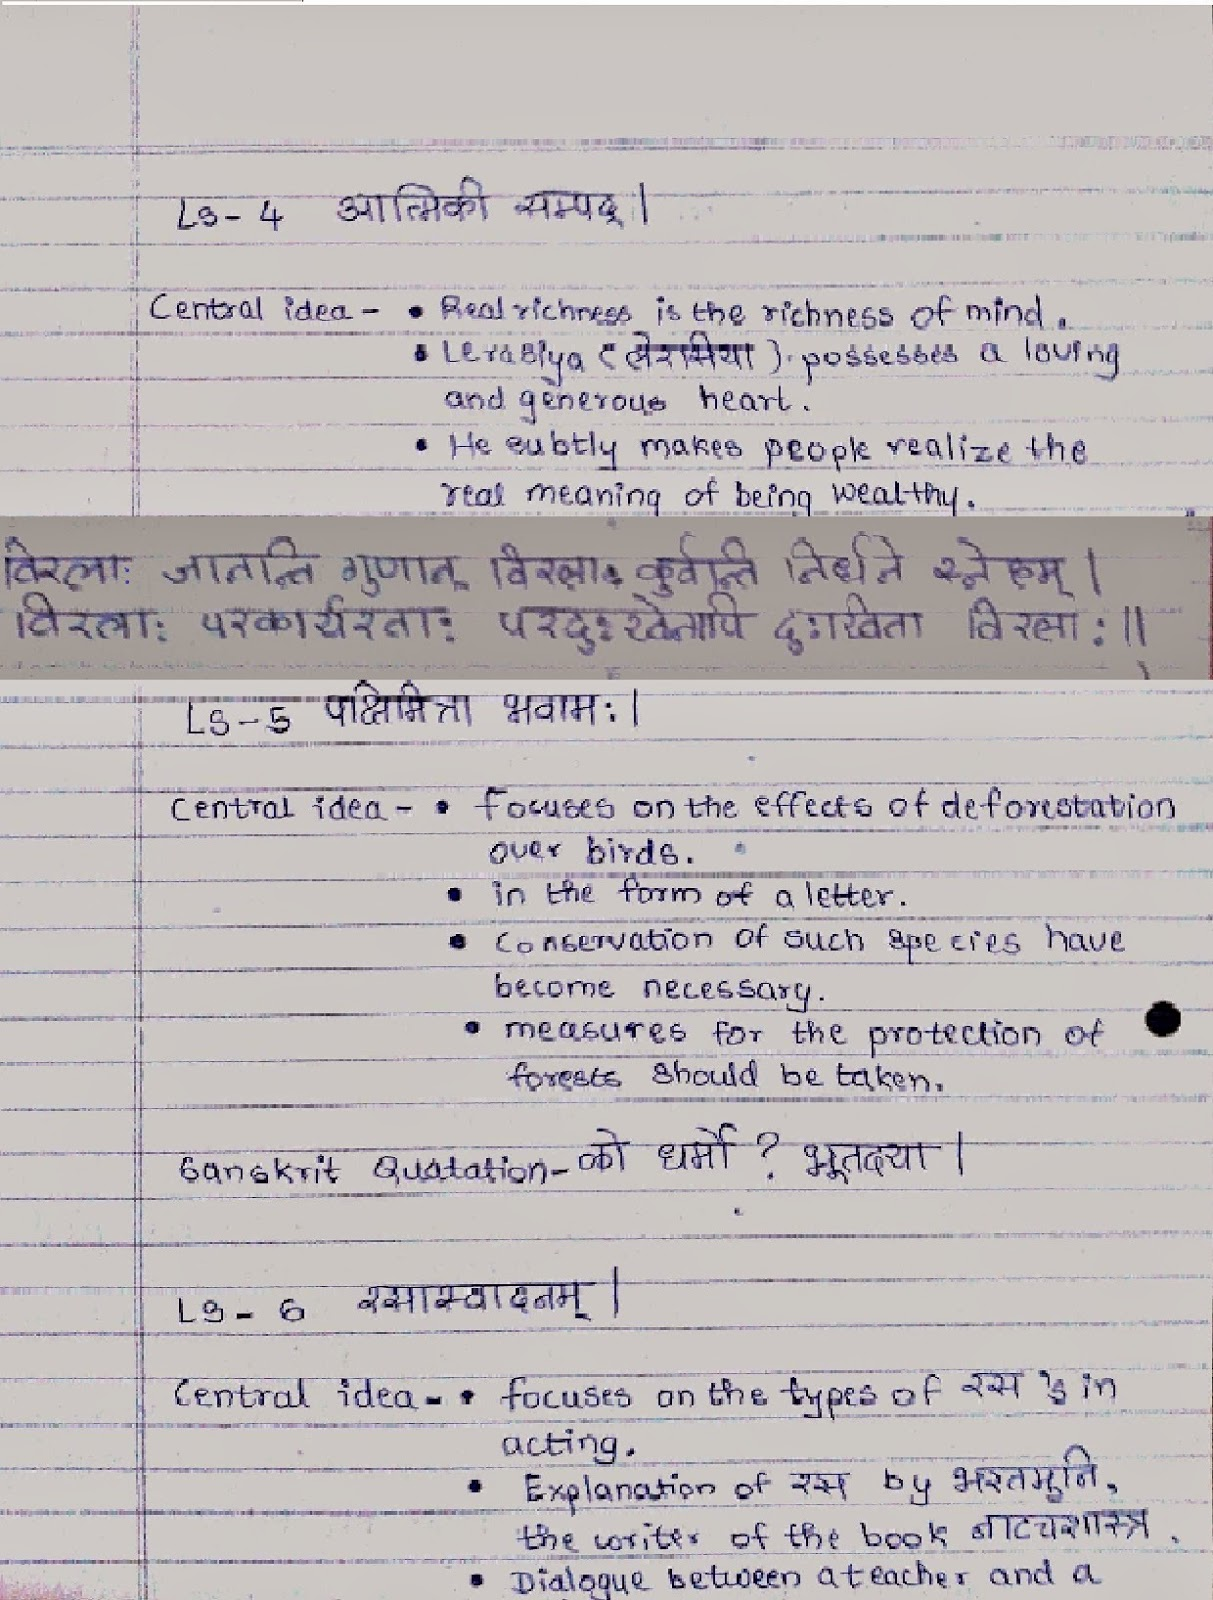 Essay on water conservation in sanskrit language